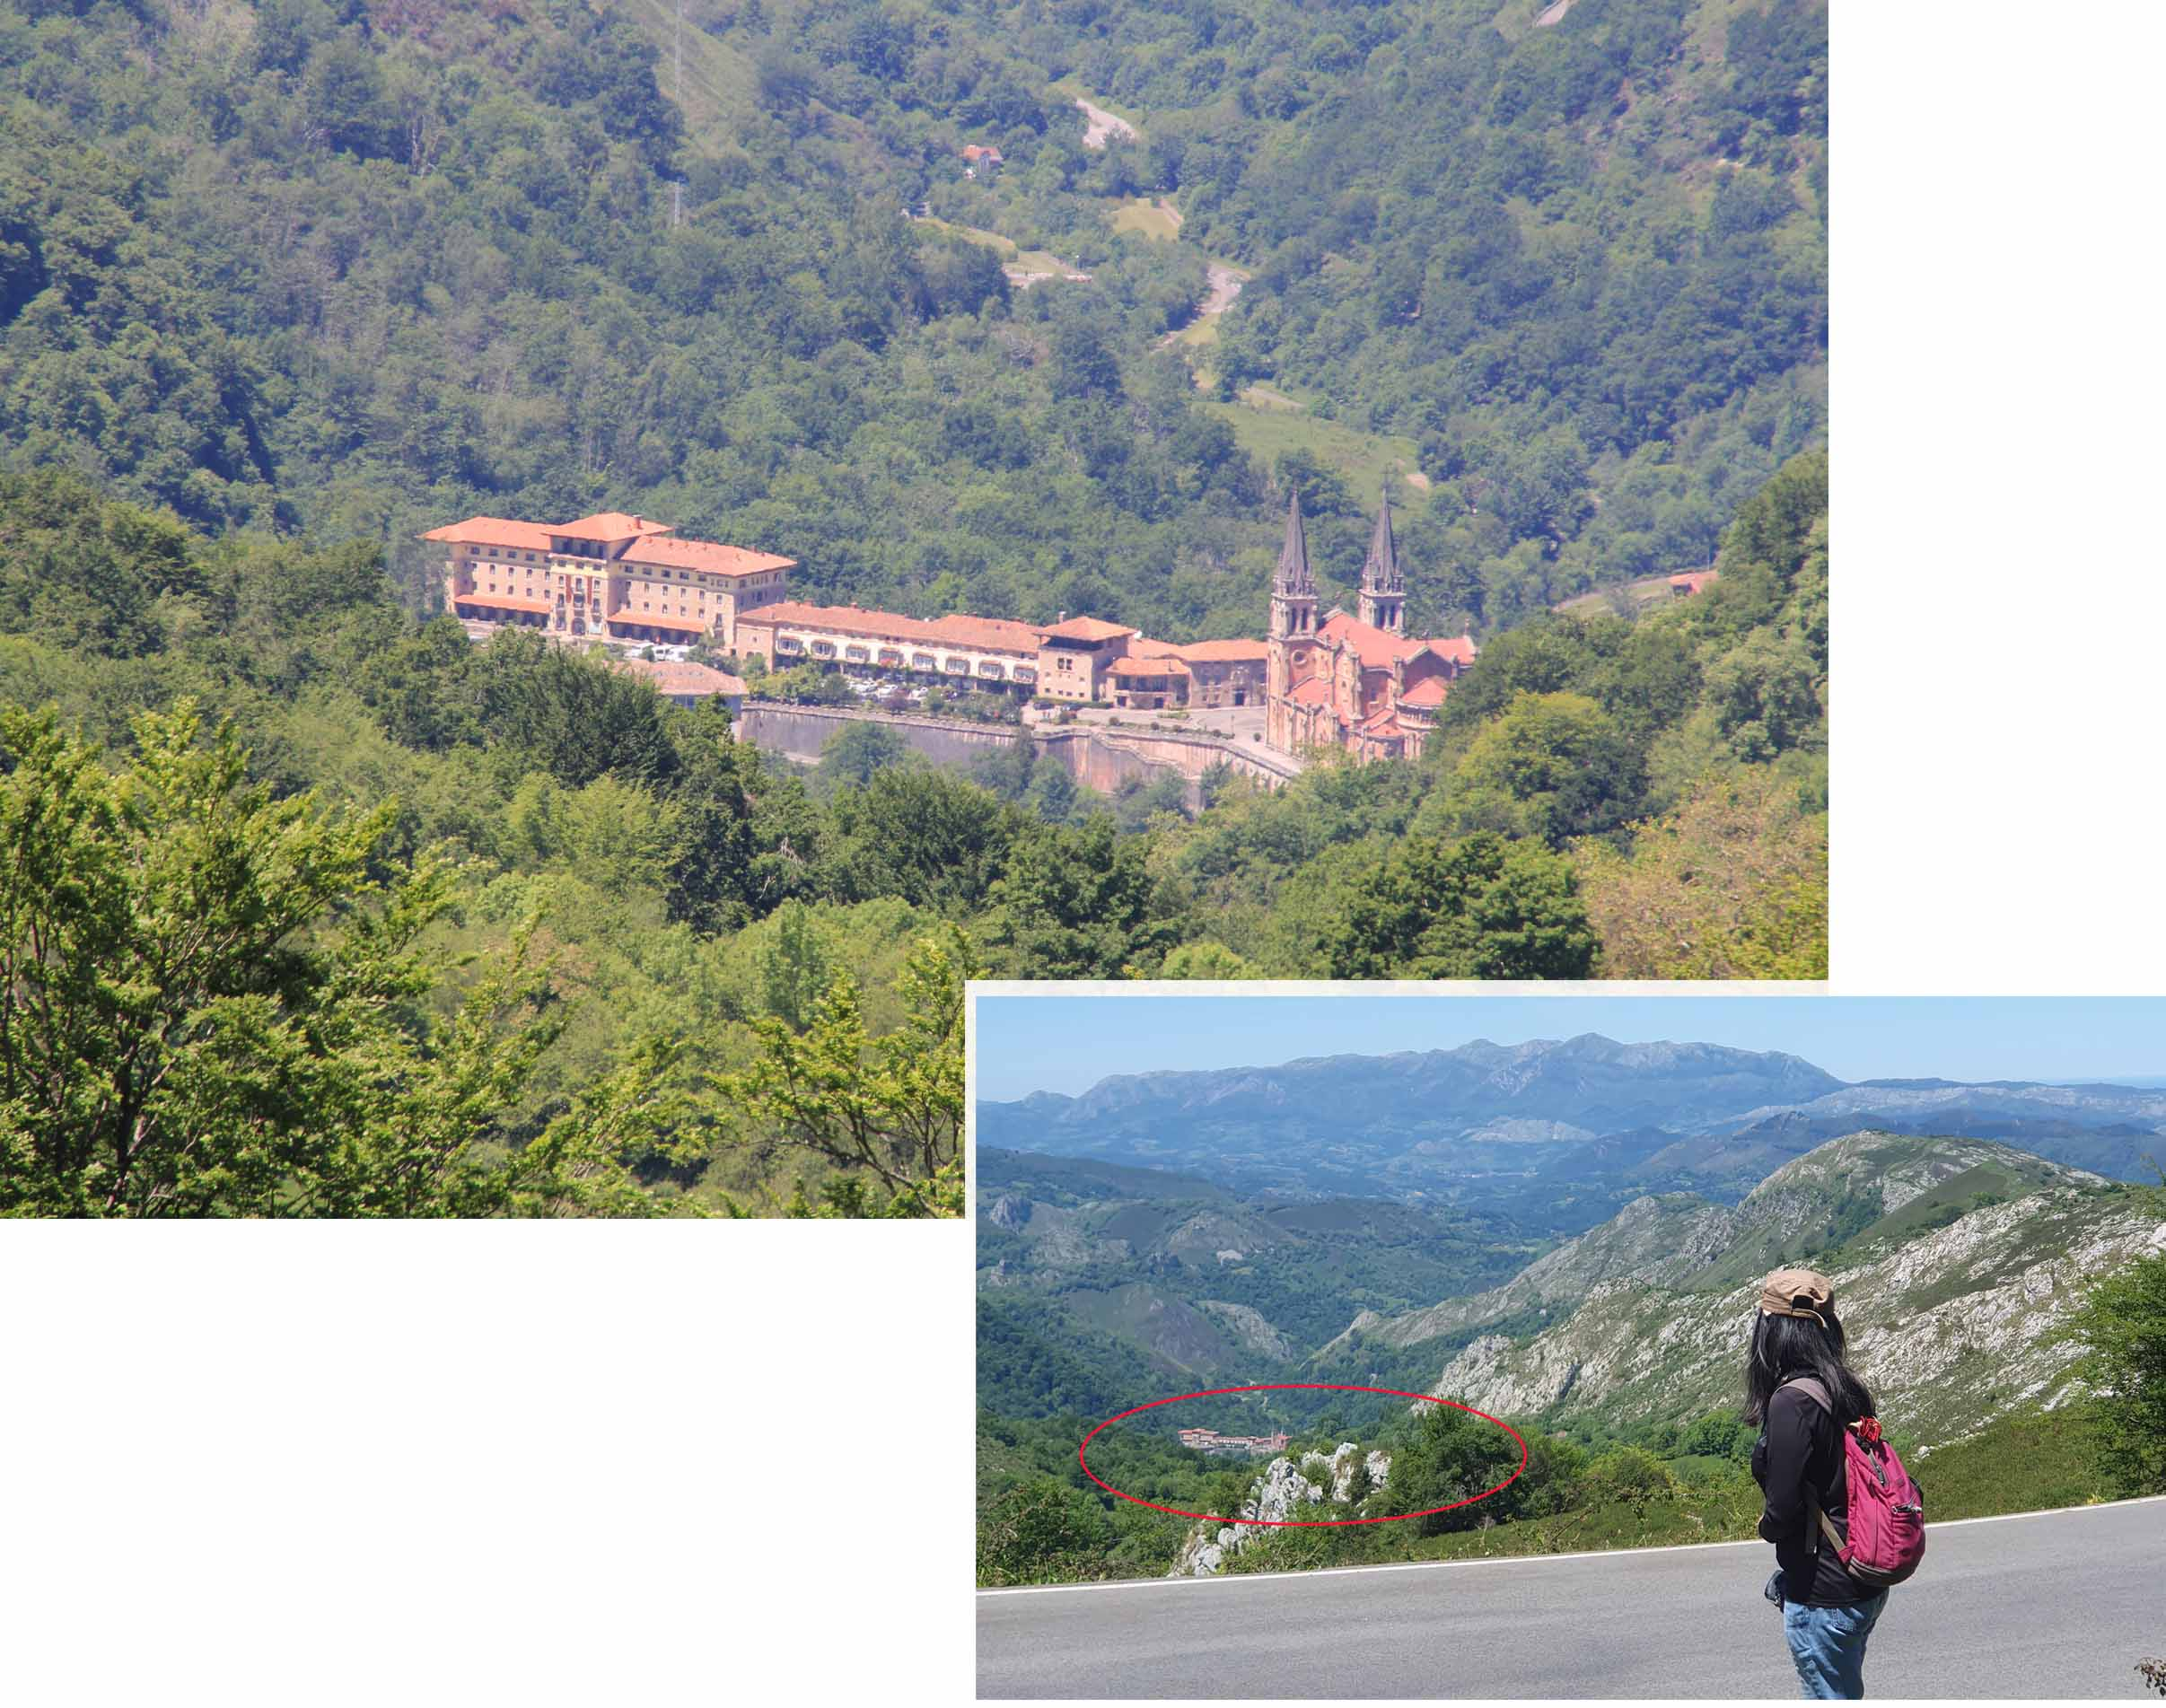 A distance view of the Basilica de Covadonga